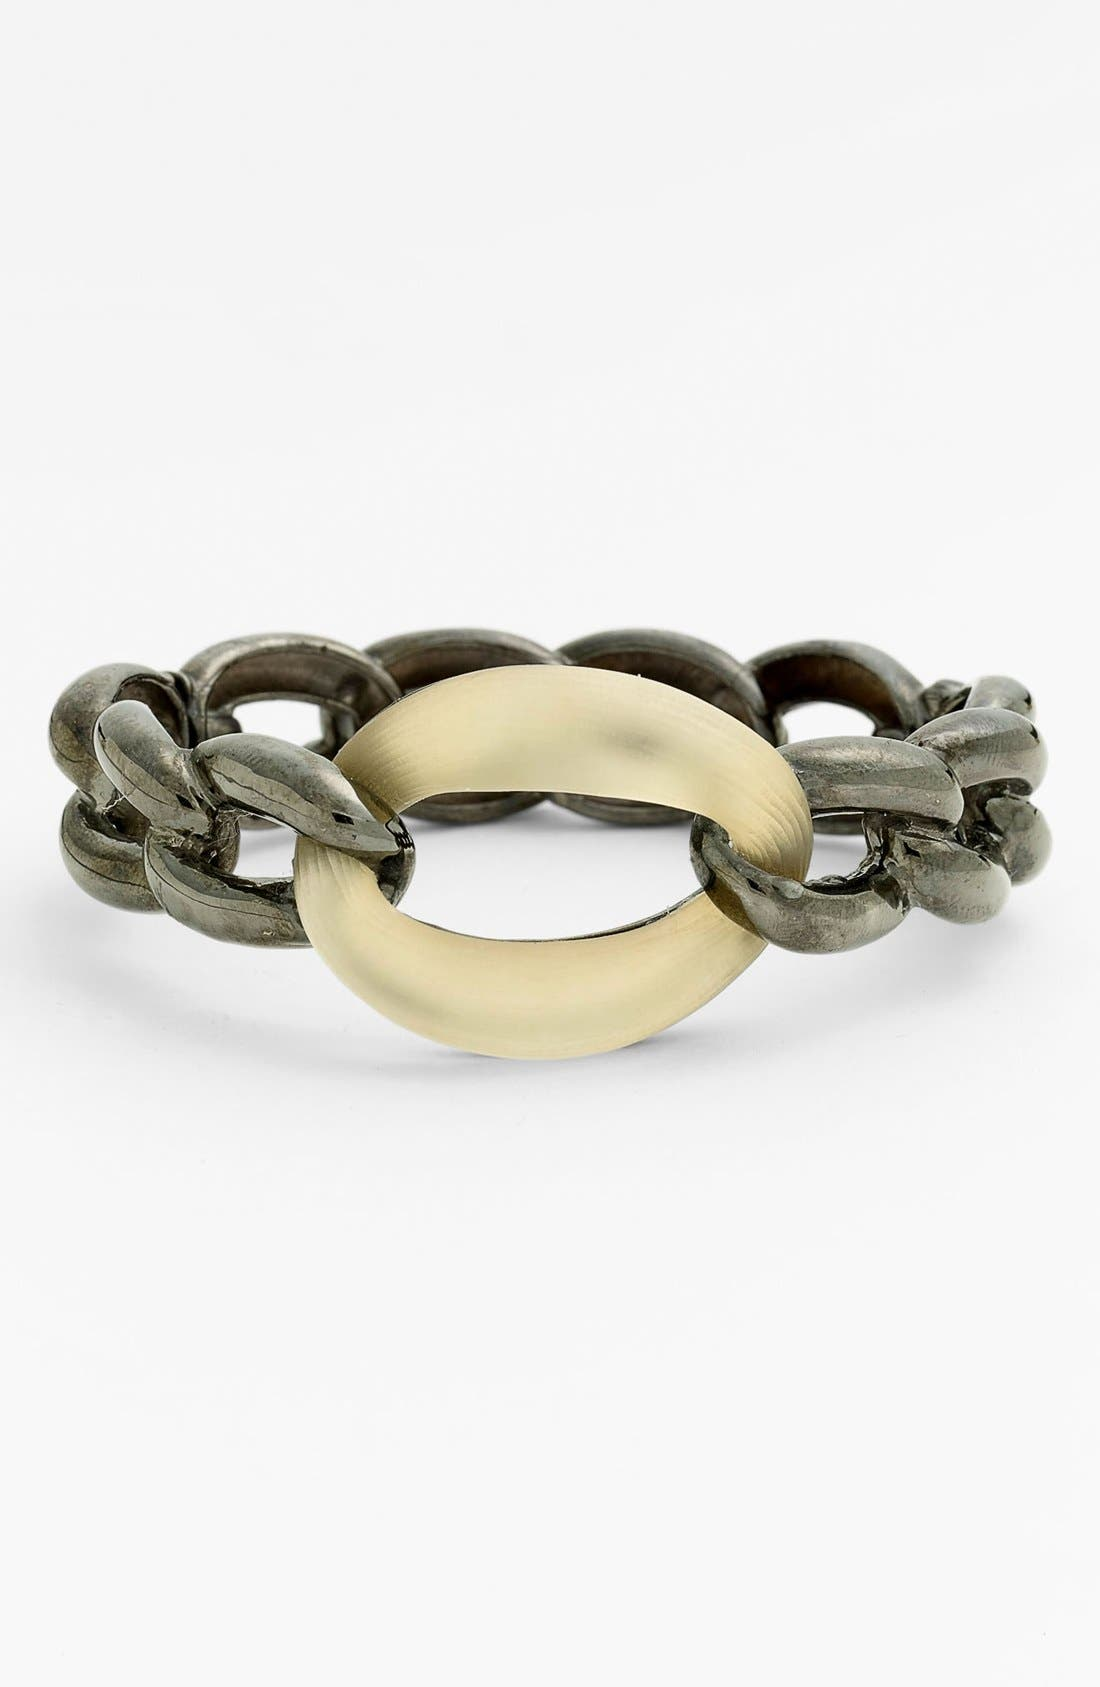 Alternate Image 1 Selected - Alexis Bittar 'Lucite® - Neo Bohemian' Link Hinged Bangle Bracelet (Nordstrom Exclusive)